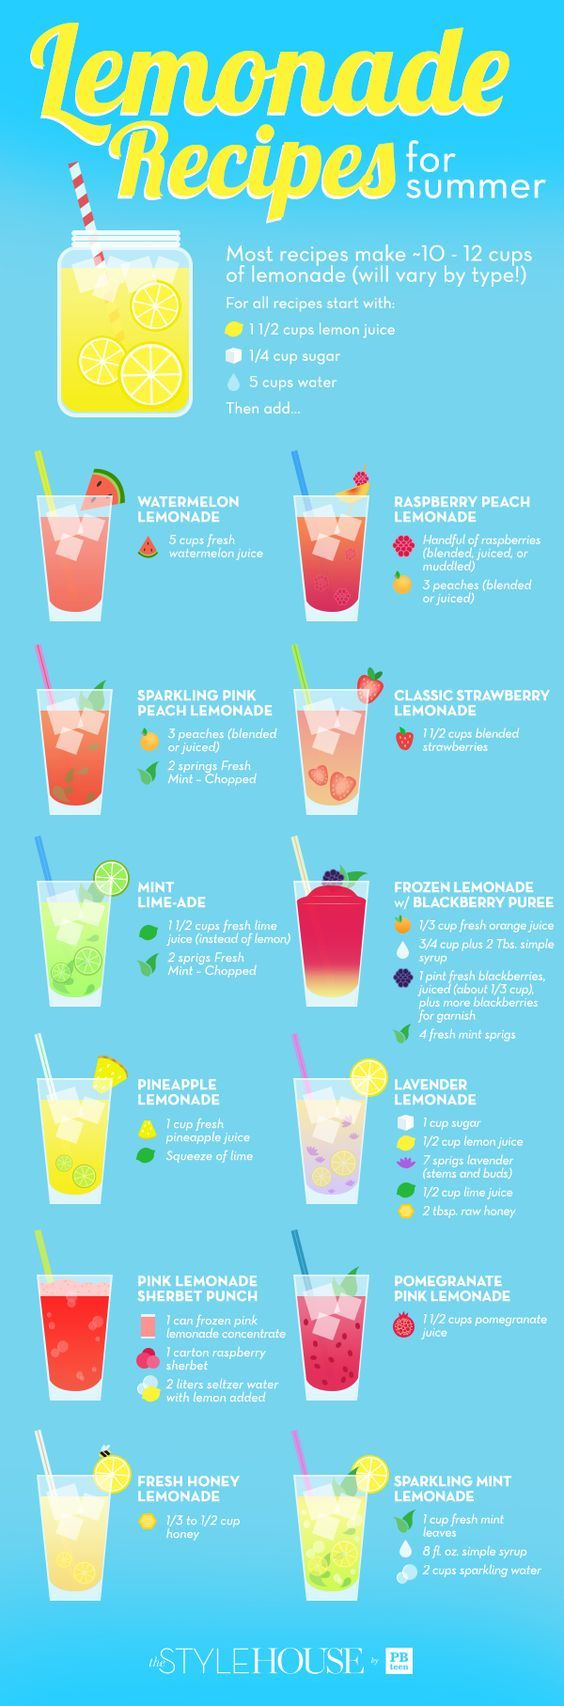 Here are 12 to die for lemonade recipes to try this summer, courtesy of The Style House!: